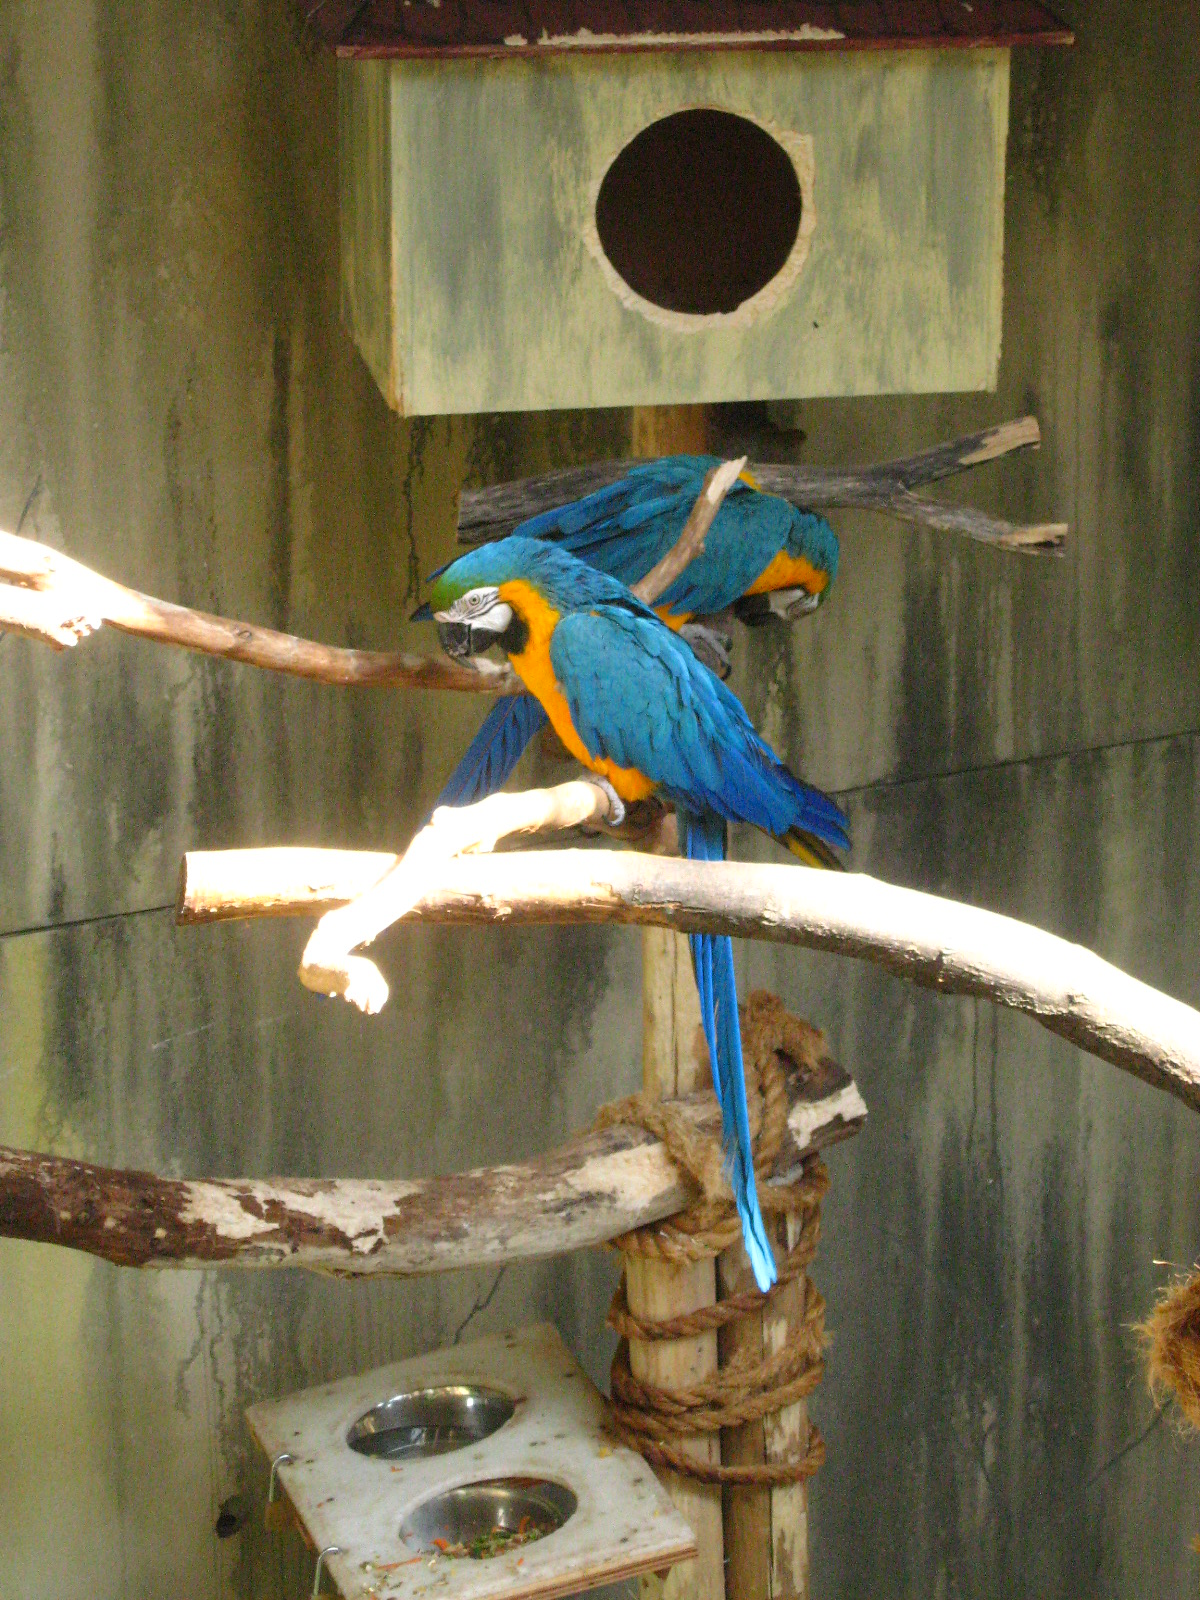 peace-and-awe: macaws my original photography- please do not remove credit